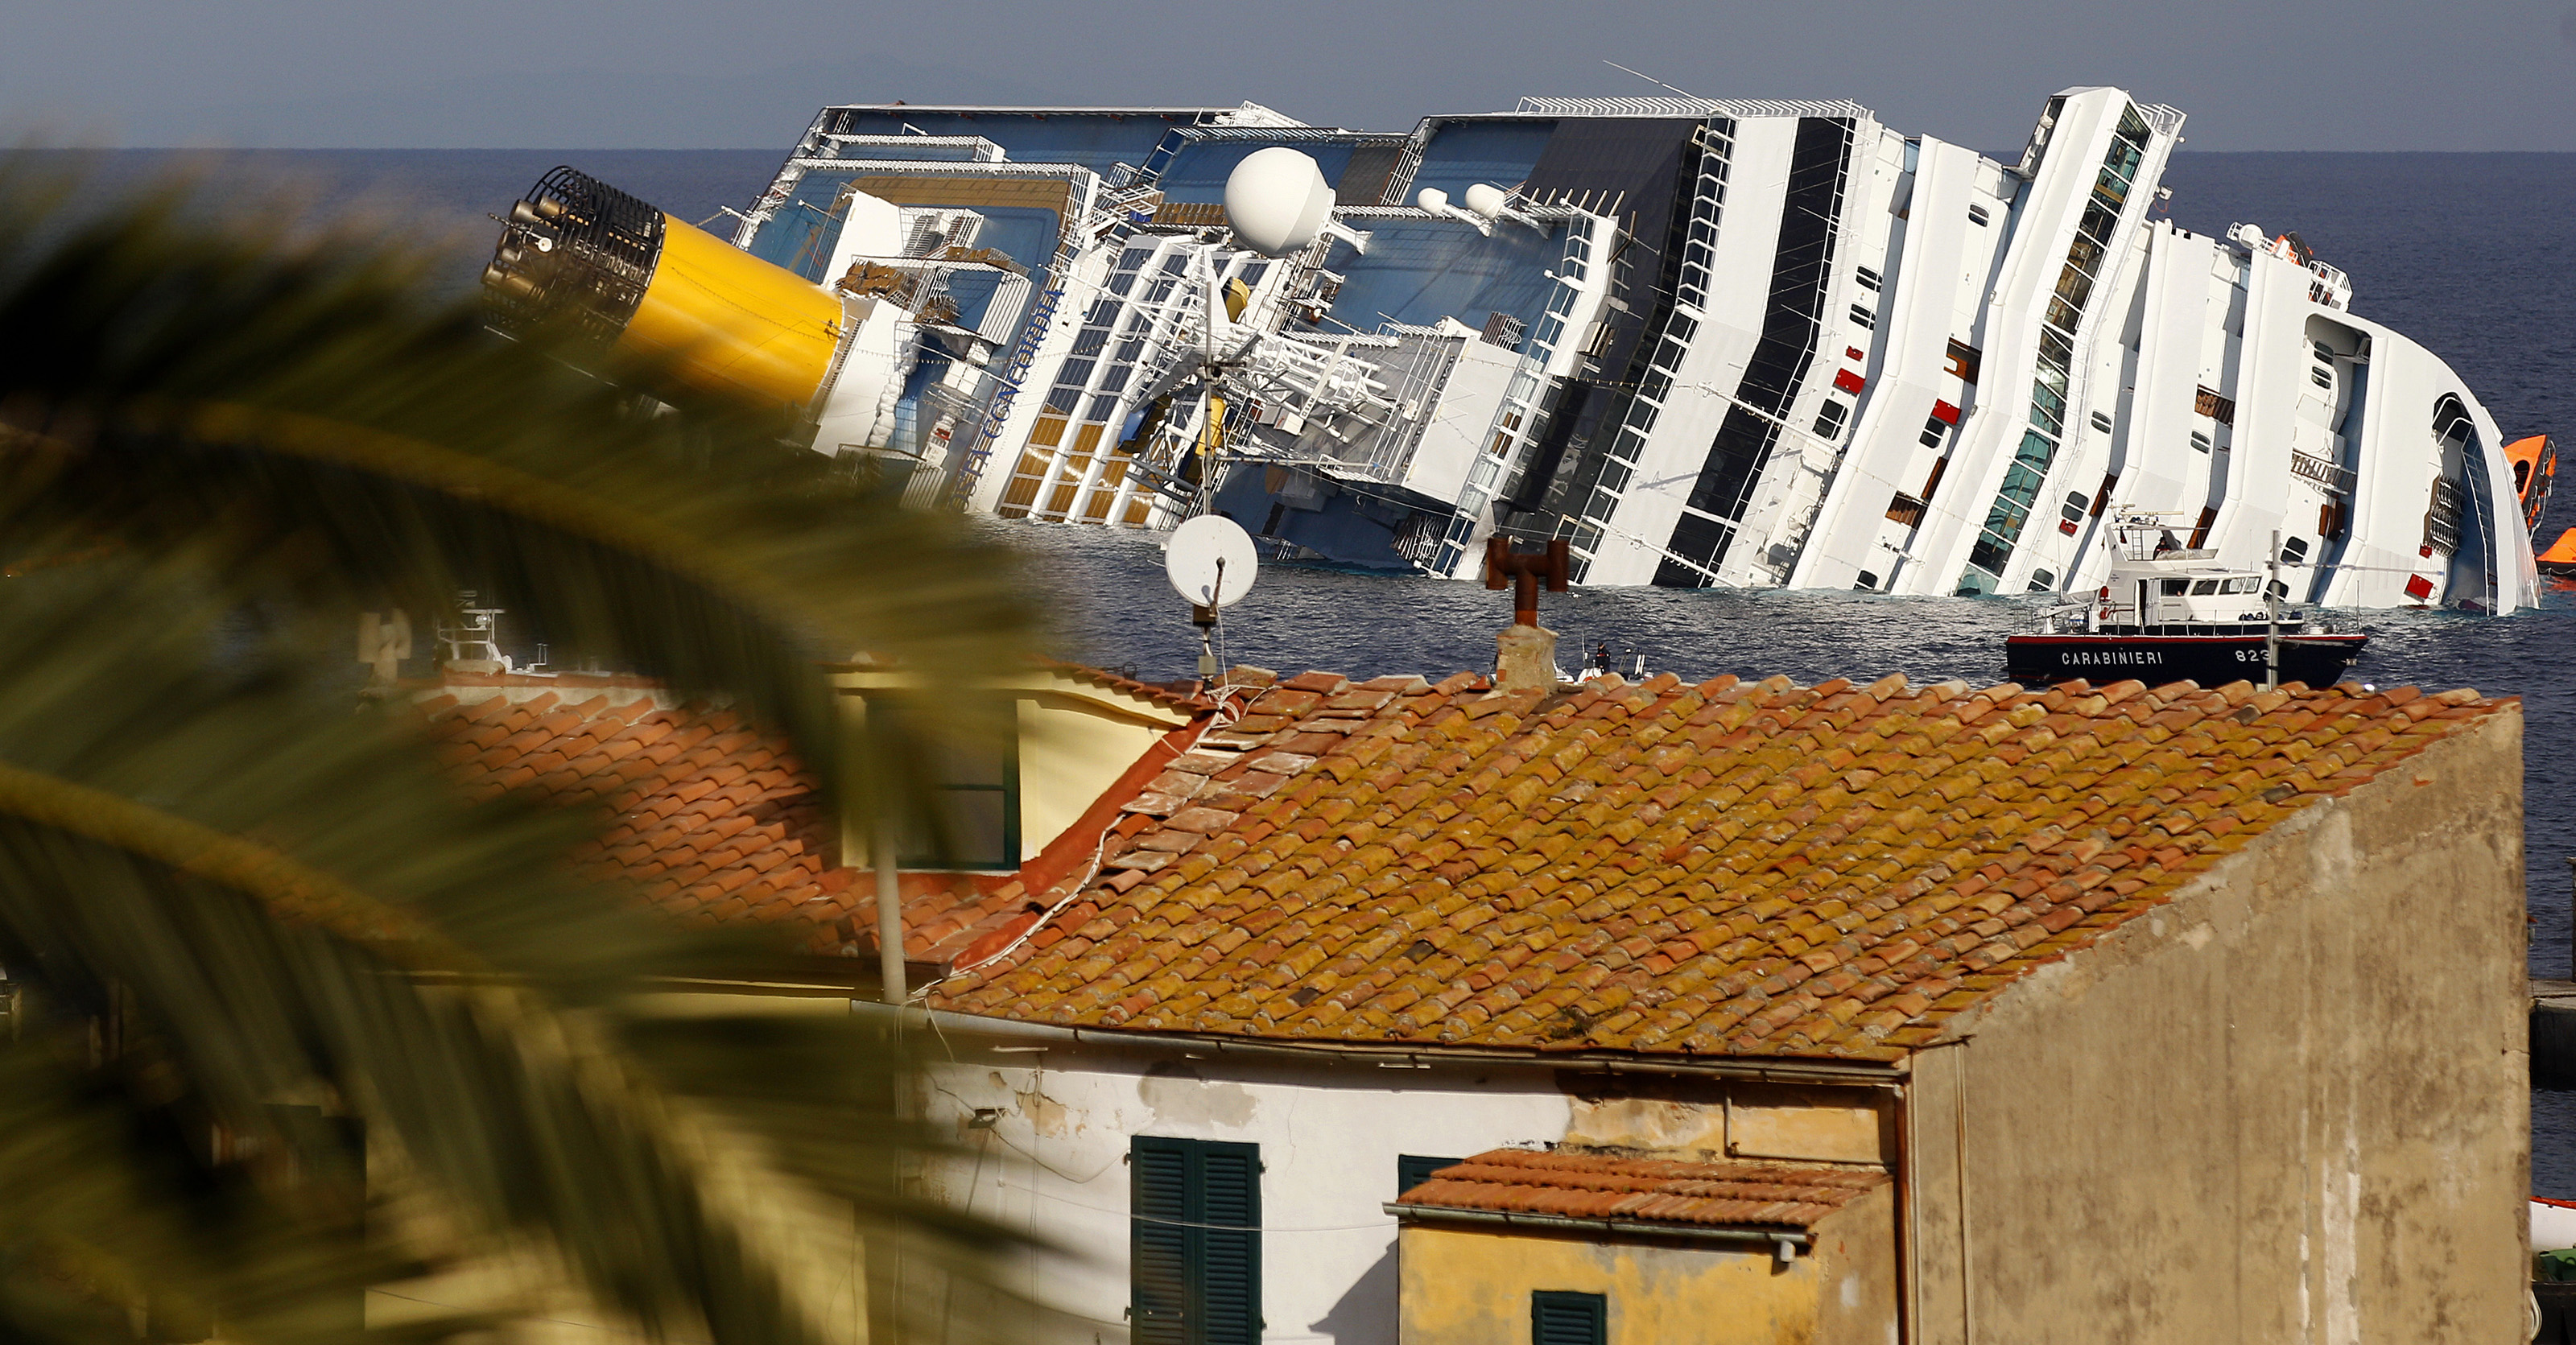 A view of the Costa Concordia cruise ship that ran aground at Giglio island